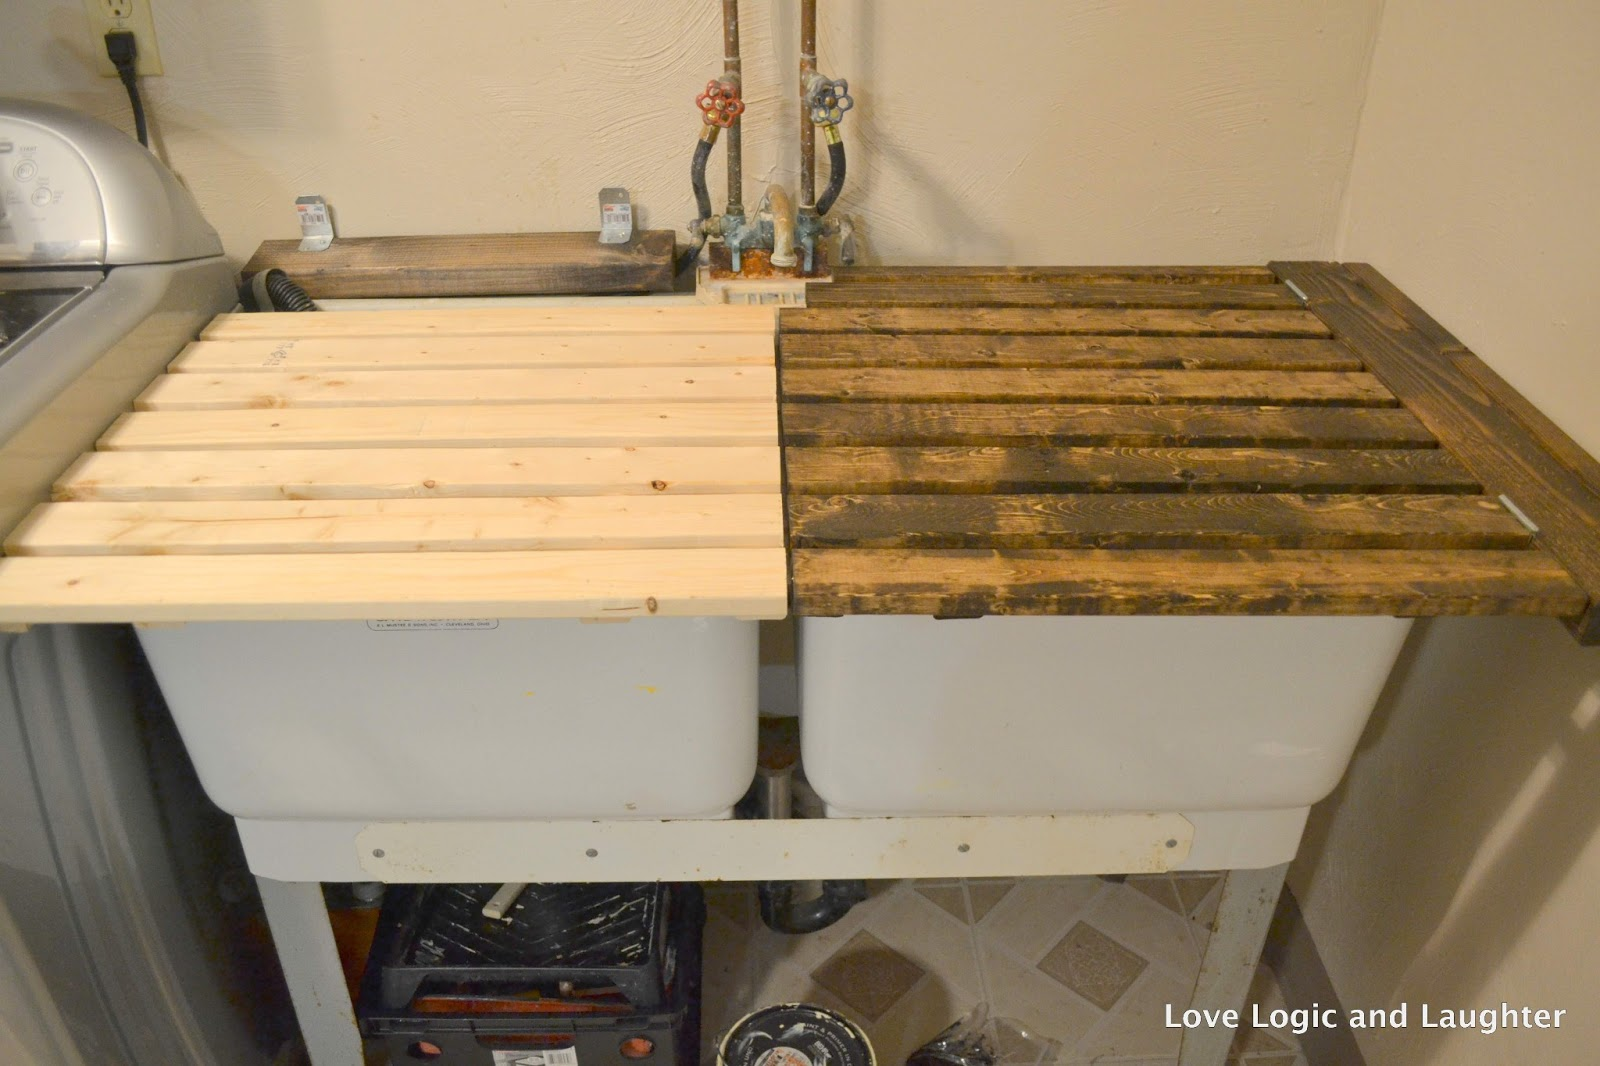 Utility Sink With Cover : Logic and Laughter: Utility Sink Cover Tutorial